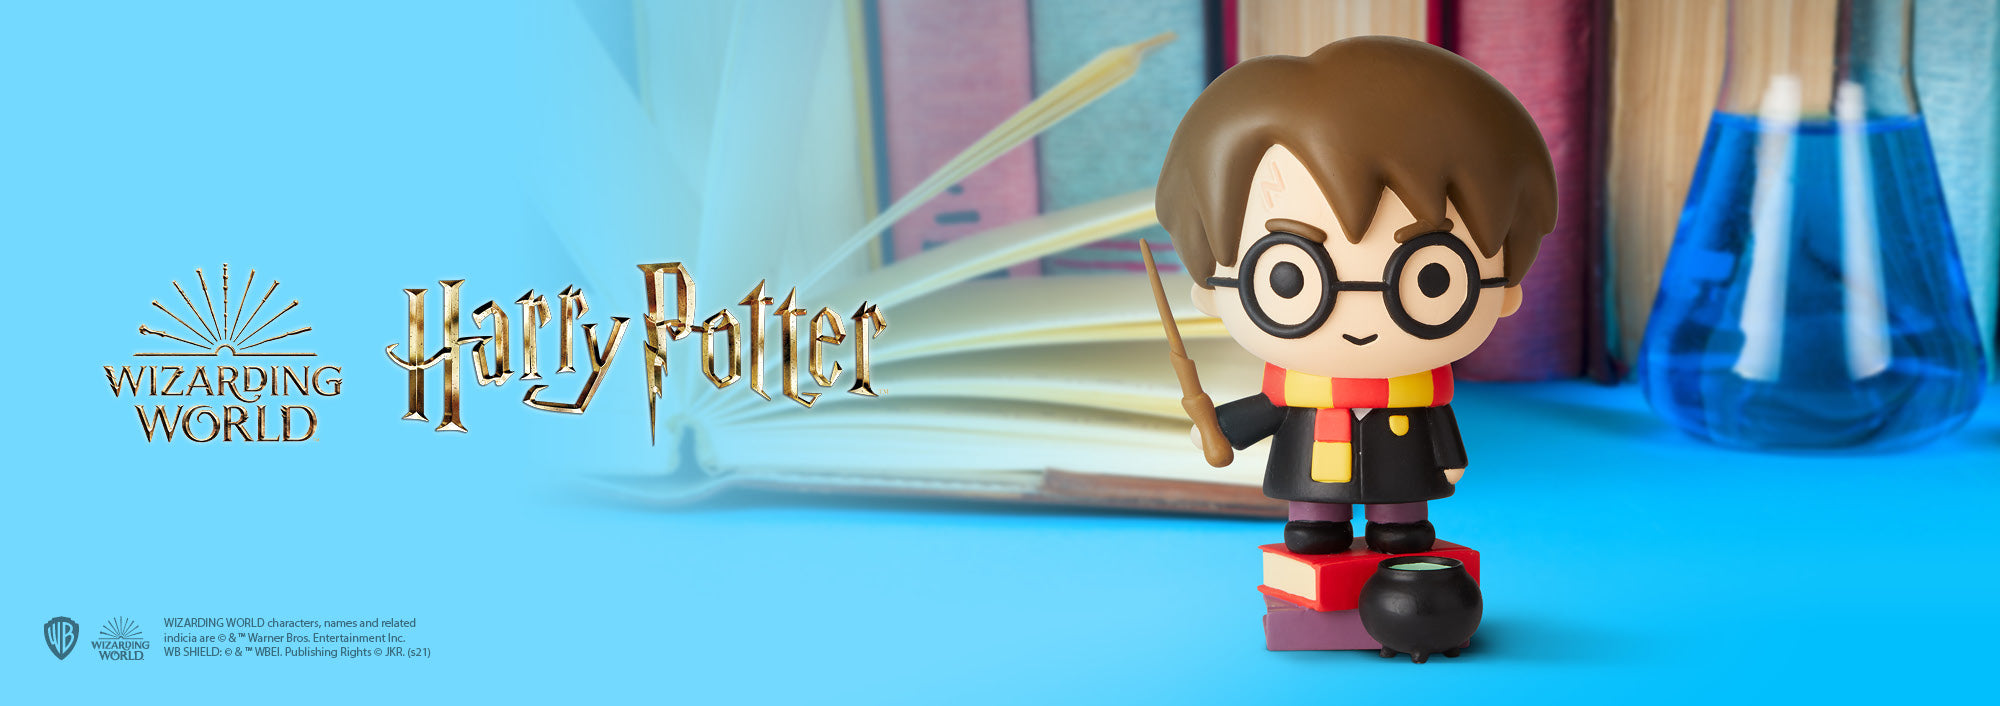 The Wizarding World of Harry Potter Collection